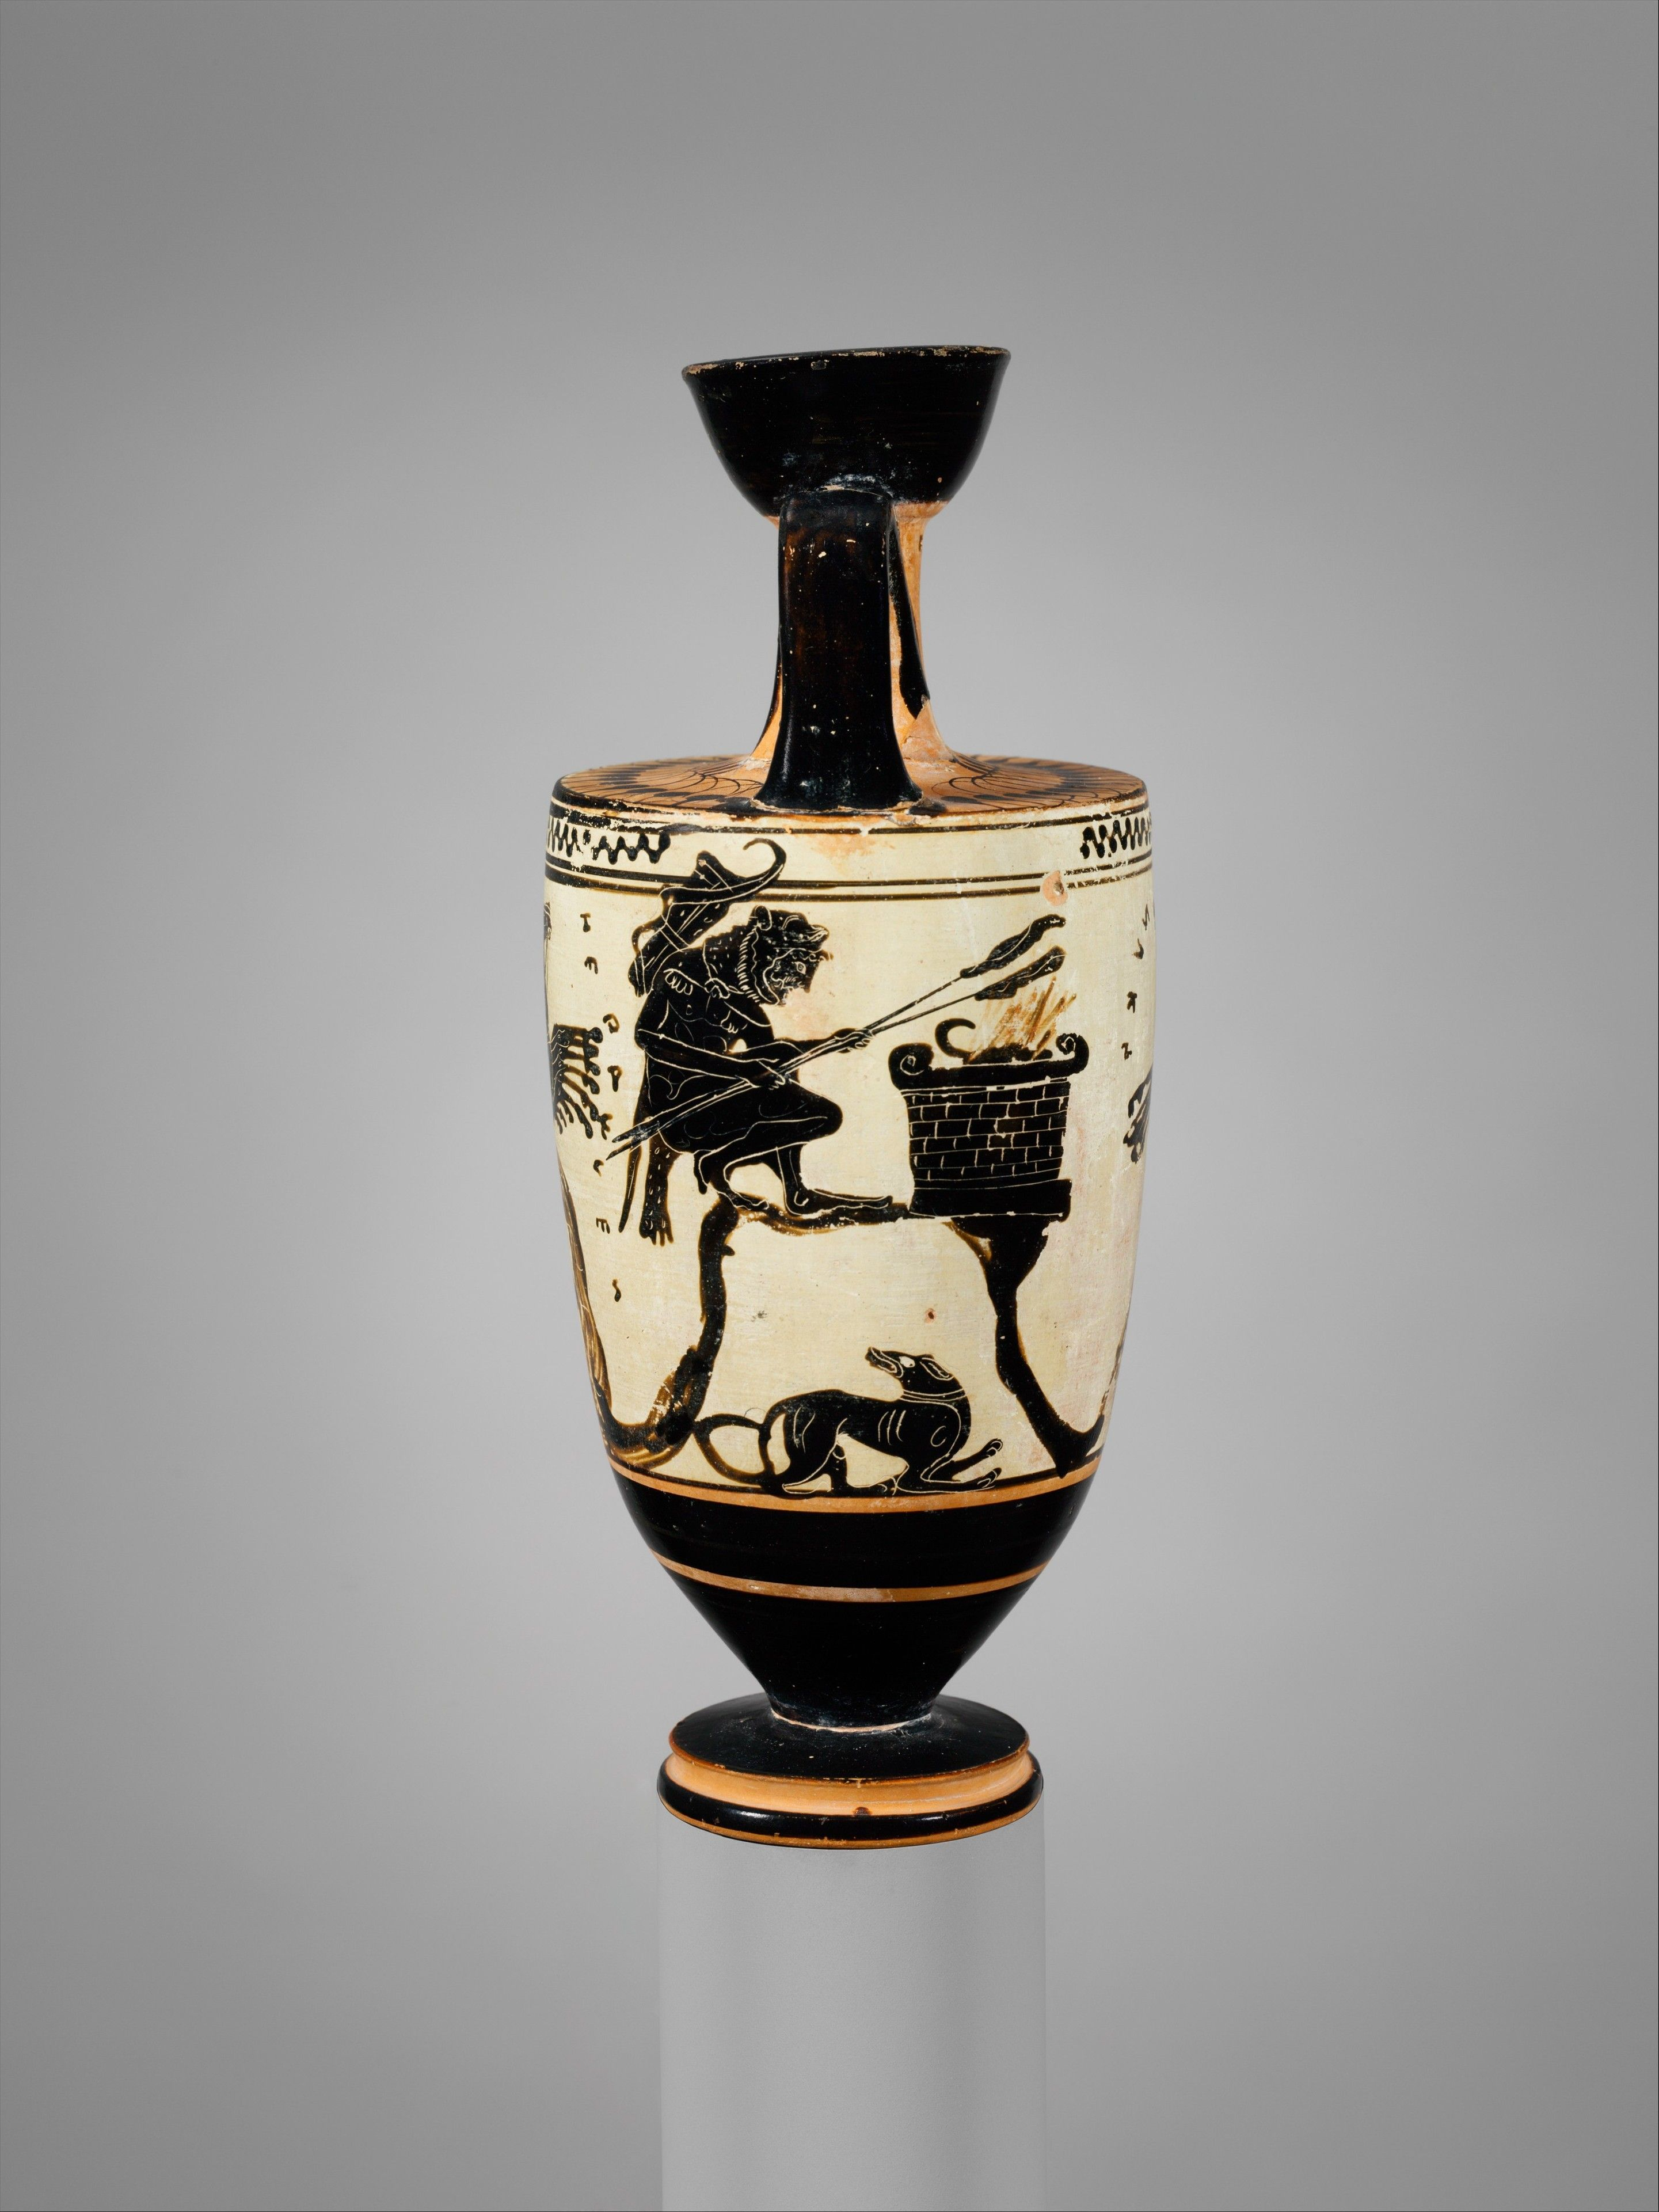 Terracotta lekythos (oil flask) Attributed to the Sappho Painter Period: Archaic Date: ca. 500 B.C. Culture: Greek, Attic Medium: Terracotta; black-figure, white-ground  Dimensions: H. 6 13/16 in. (17.3 cm); diameter 2 13/16 in. (7.2 cm)   Helios (the Sun) rises in his quadriga (4-horse chariot); above, Nyx (Night) driving away to the left and Eos (the goddess of dawn) to the right; Herakles offering sacrifice at altar.   The Metropolitan Museum of Art